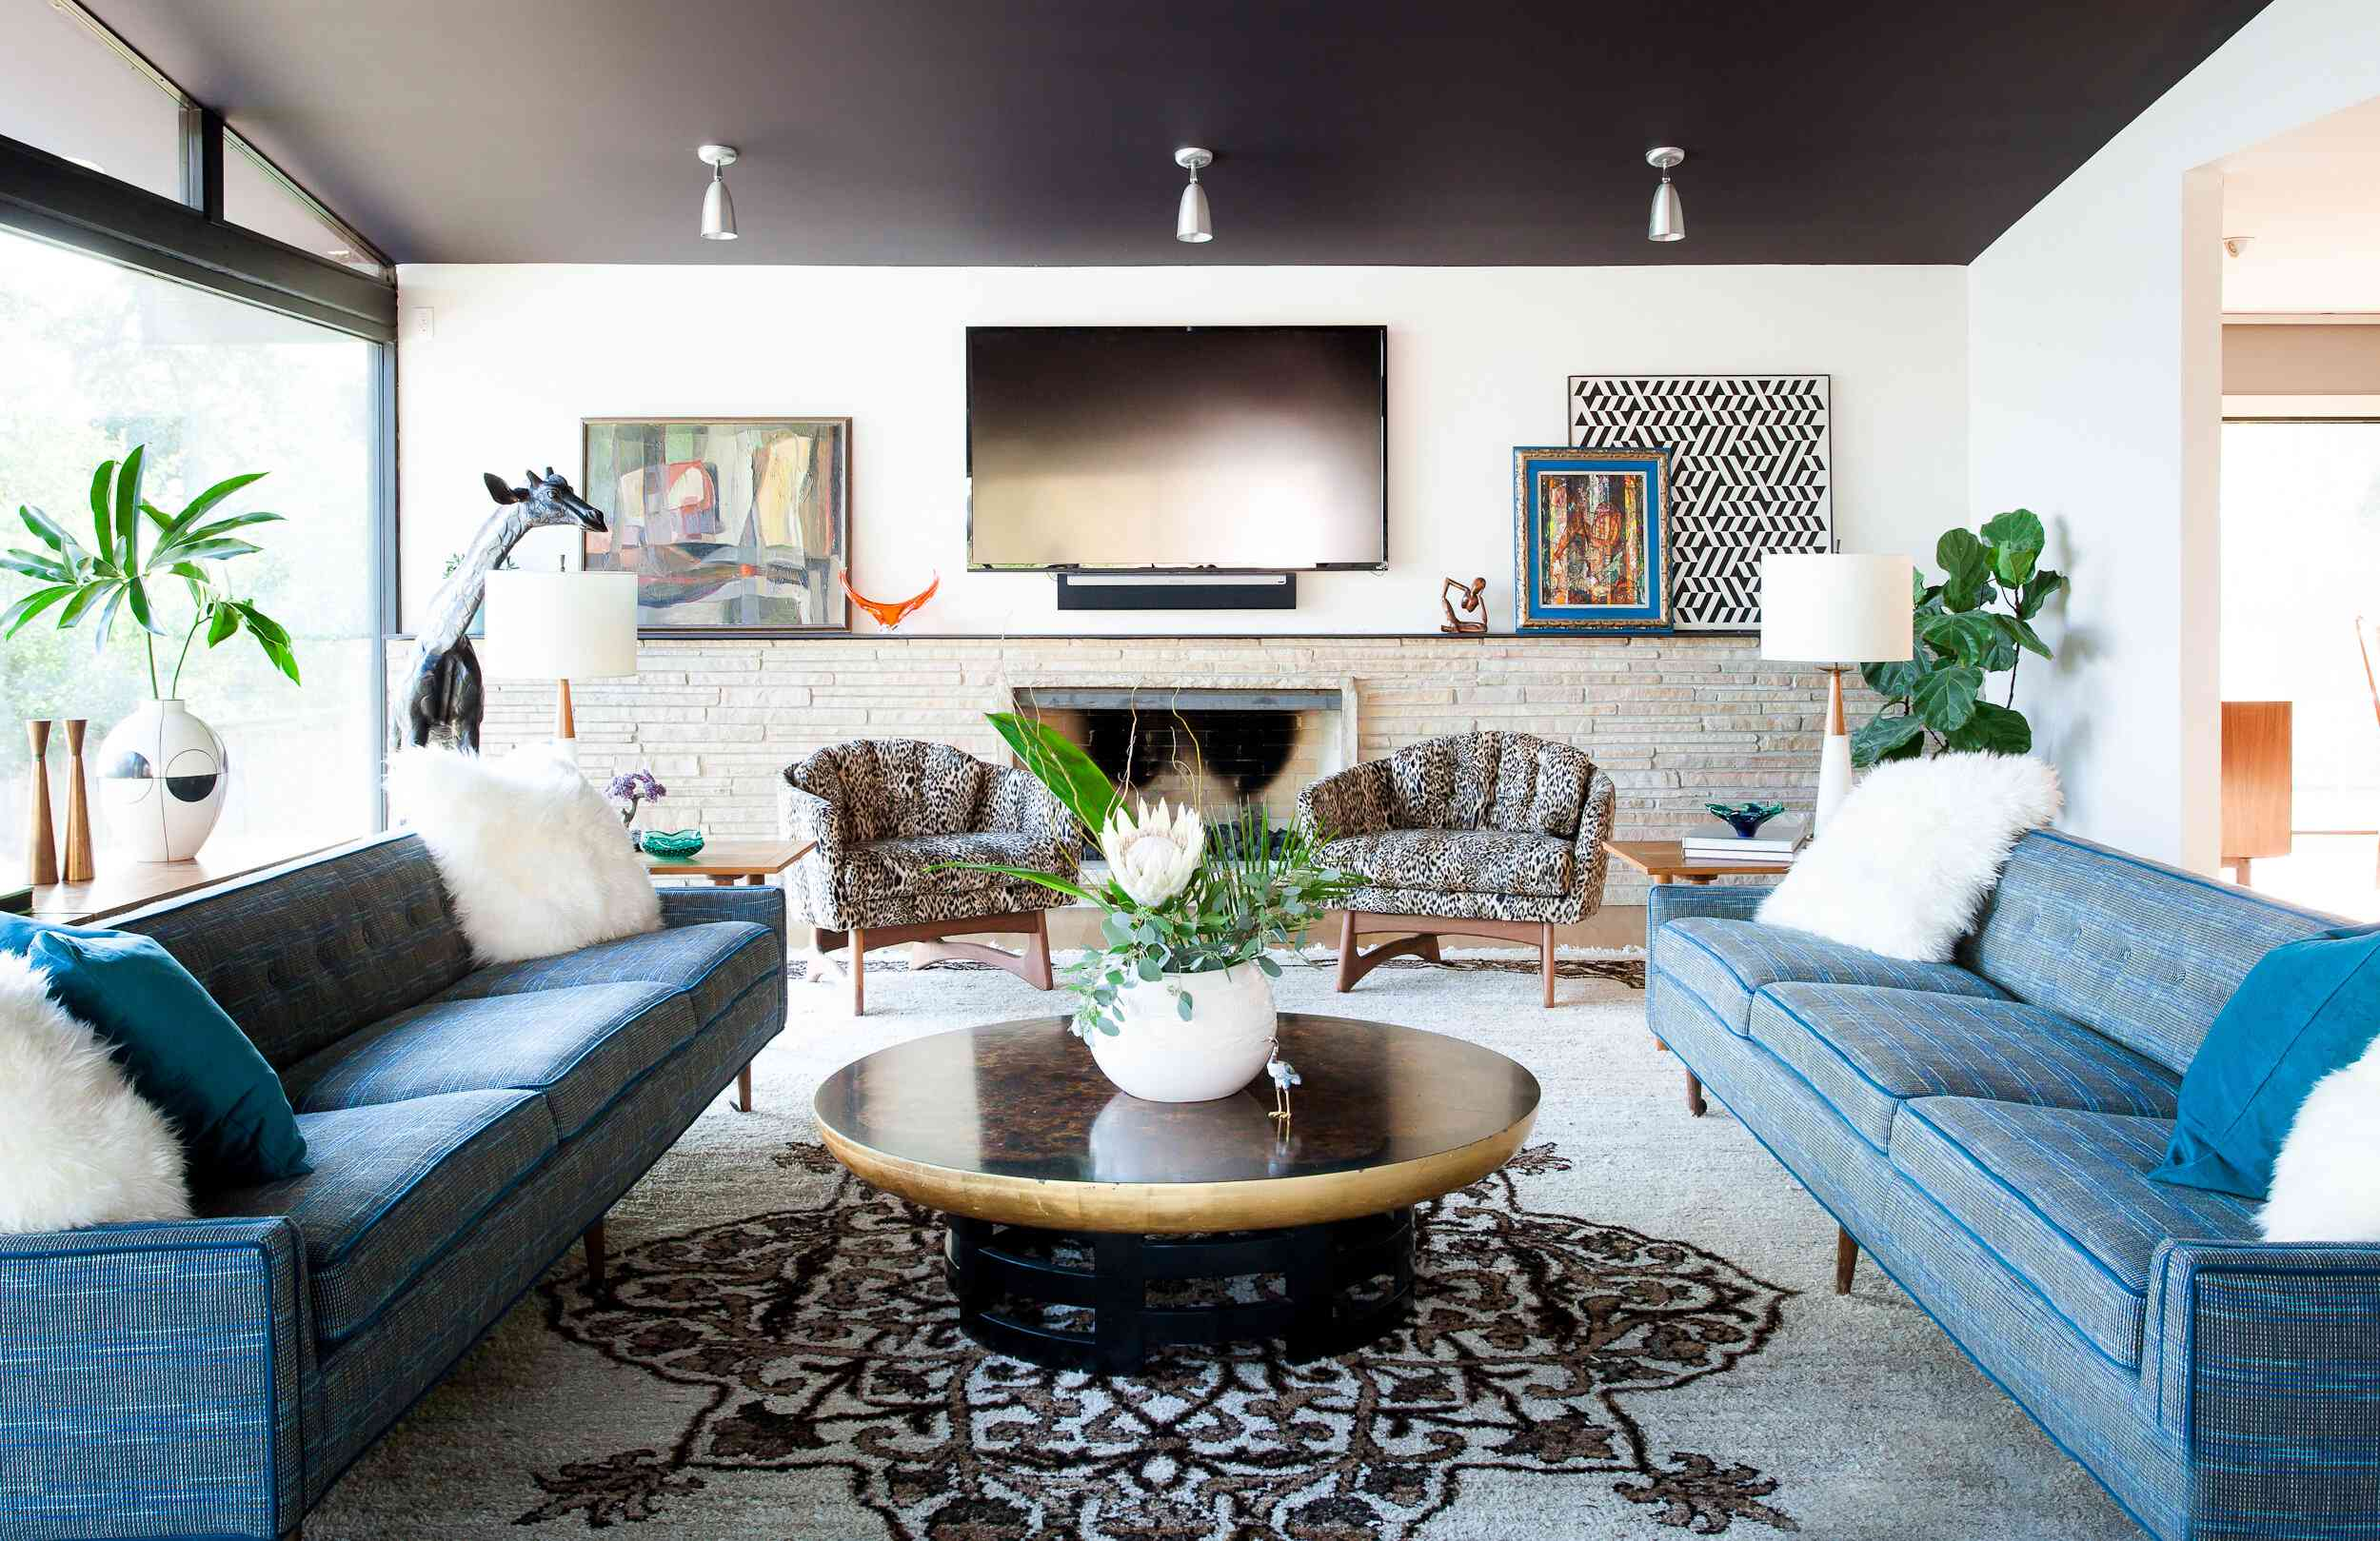 Eclectic living room with dark-painted ceiling, blue couches